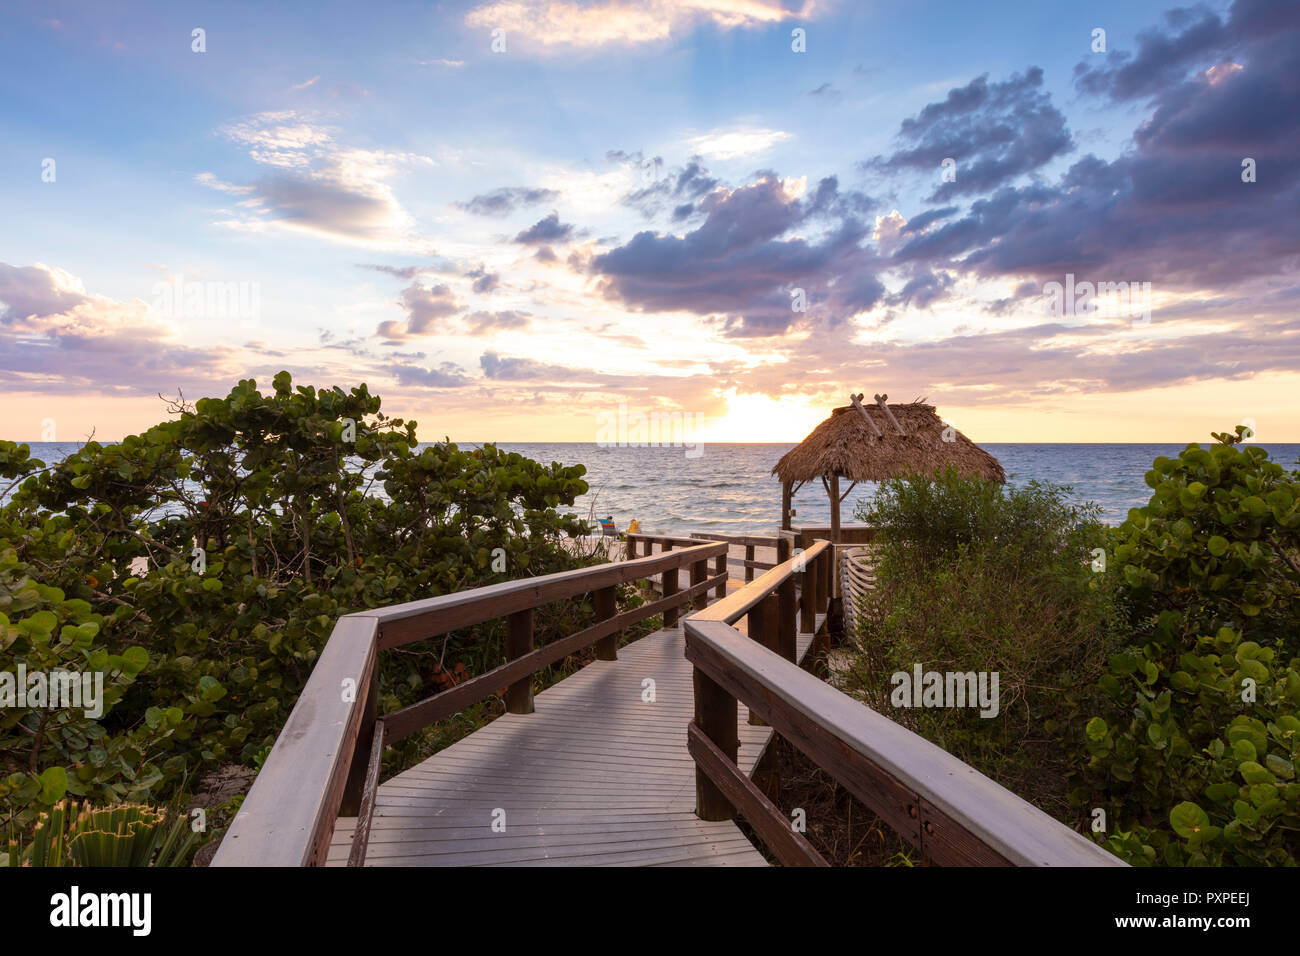 La demande de Barefoot Beach, Naples, Florida, USA Photo Stock